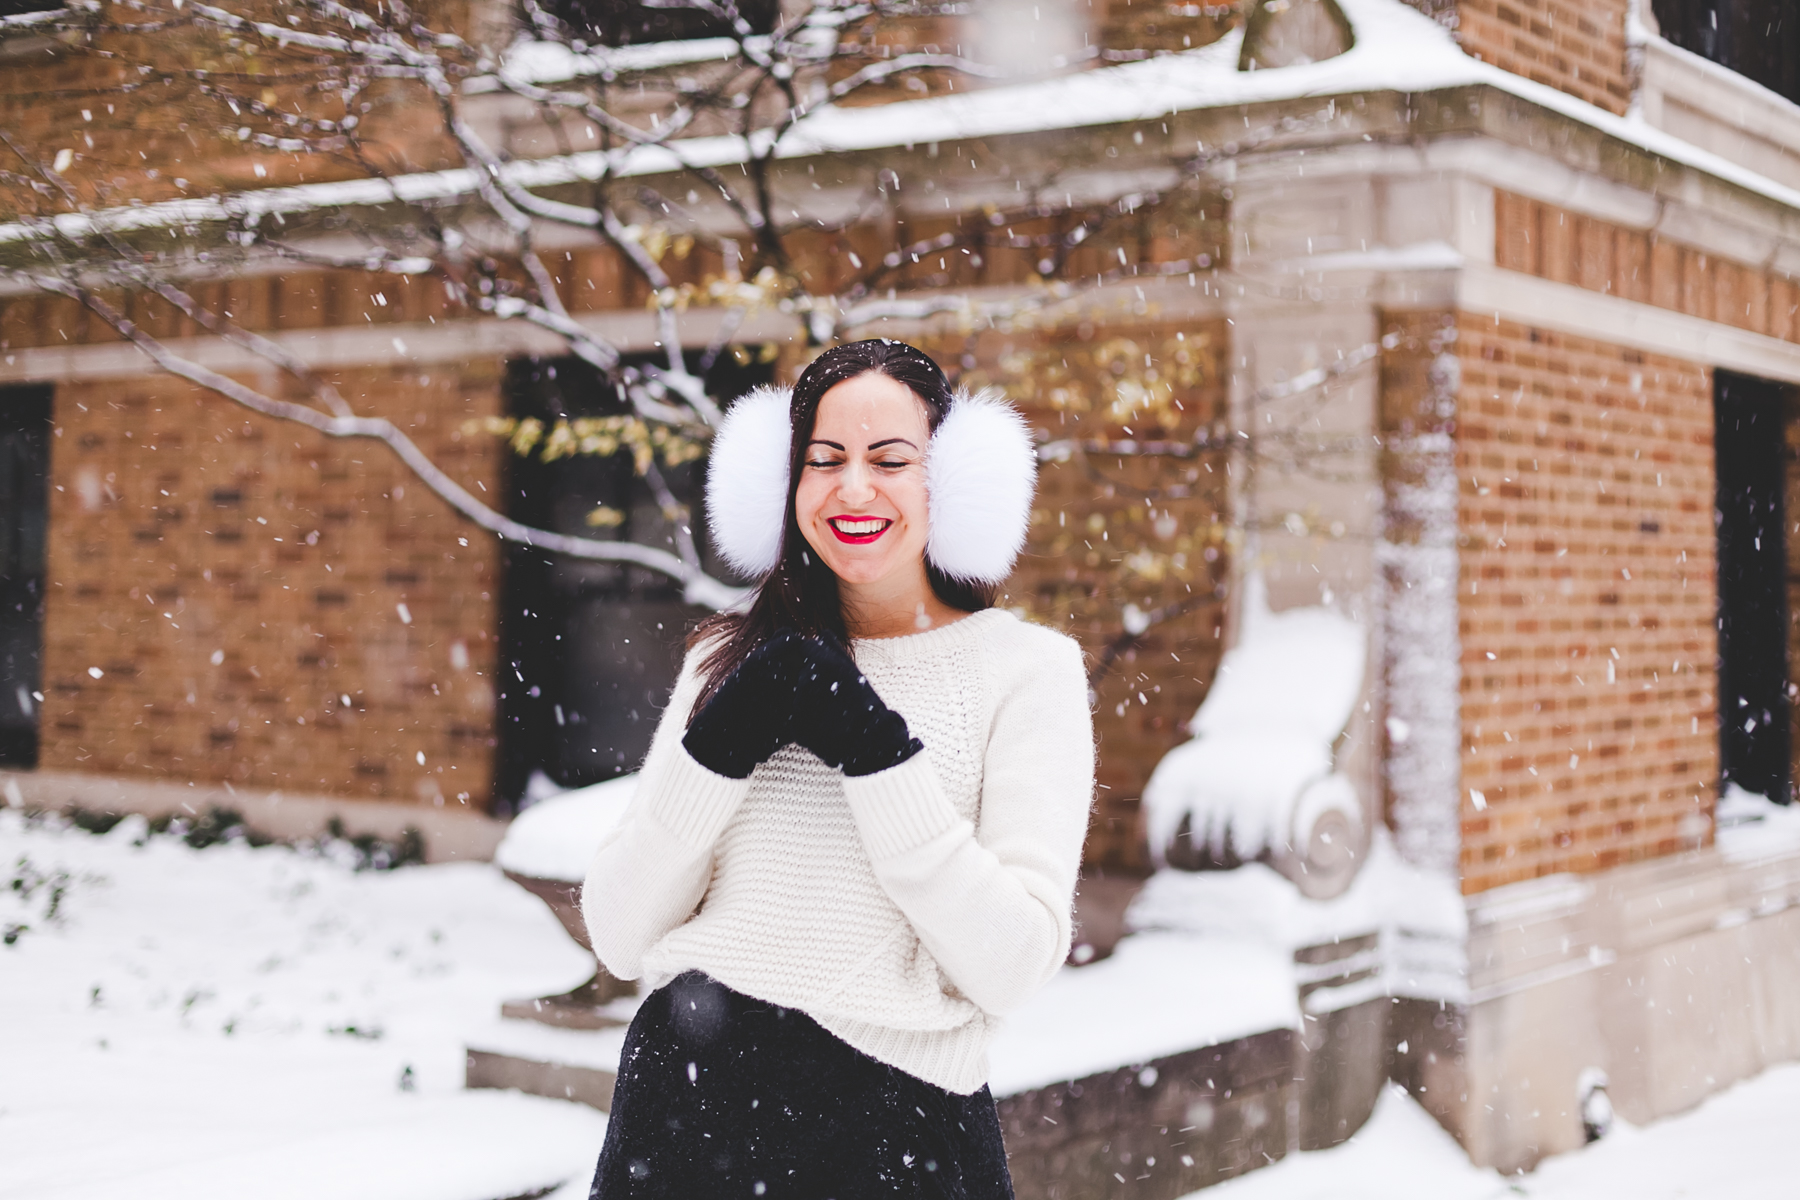 Yana Frigelis of NoMad Luxuries wearing fur earmuffs and a cozy cableknit sweater in the snow for the holidays